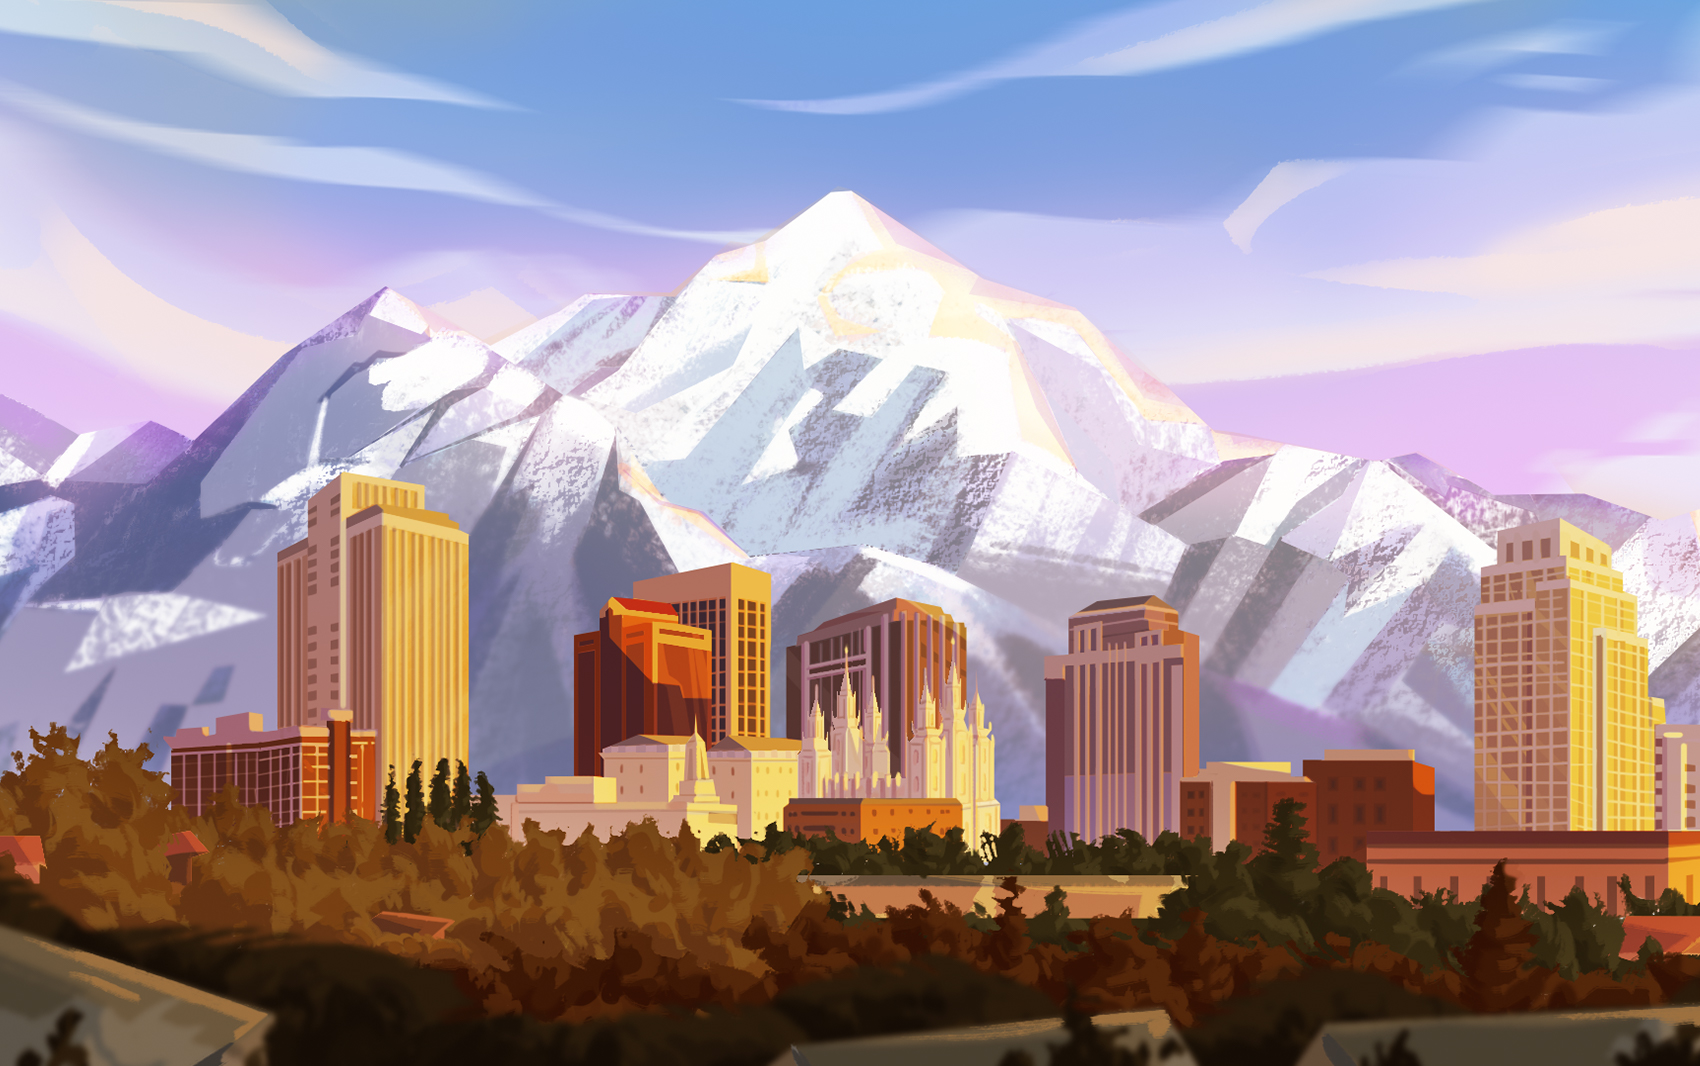 Animation company set to keep more creatives in SLC.